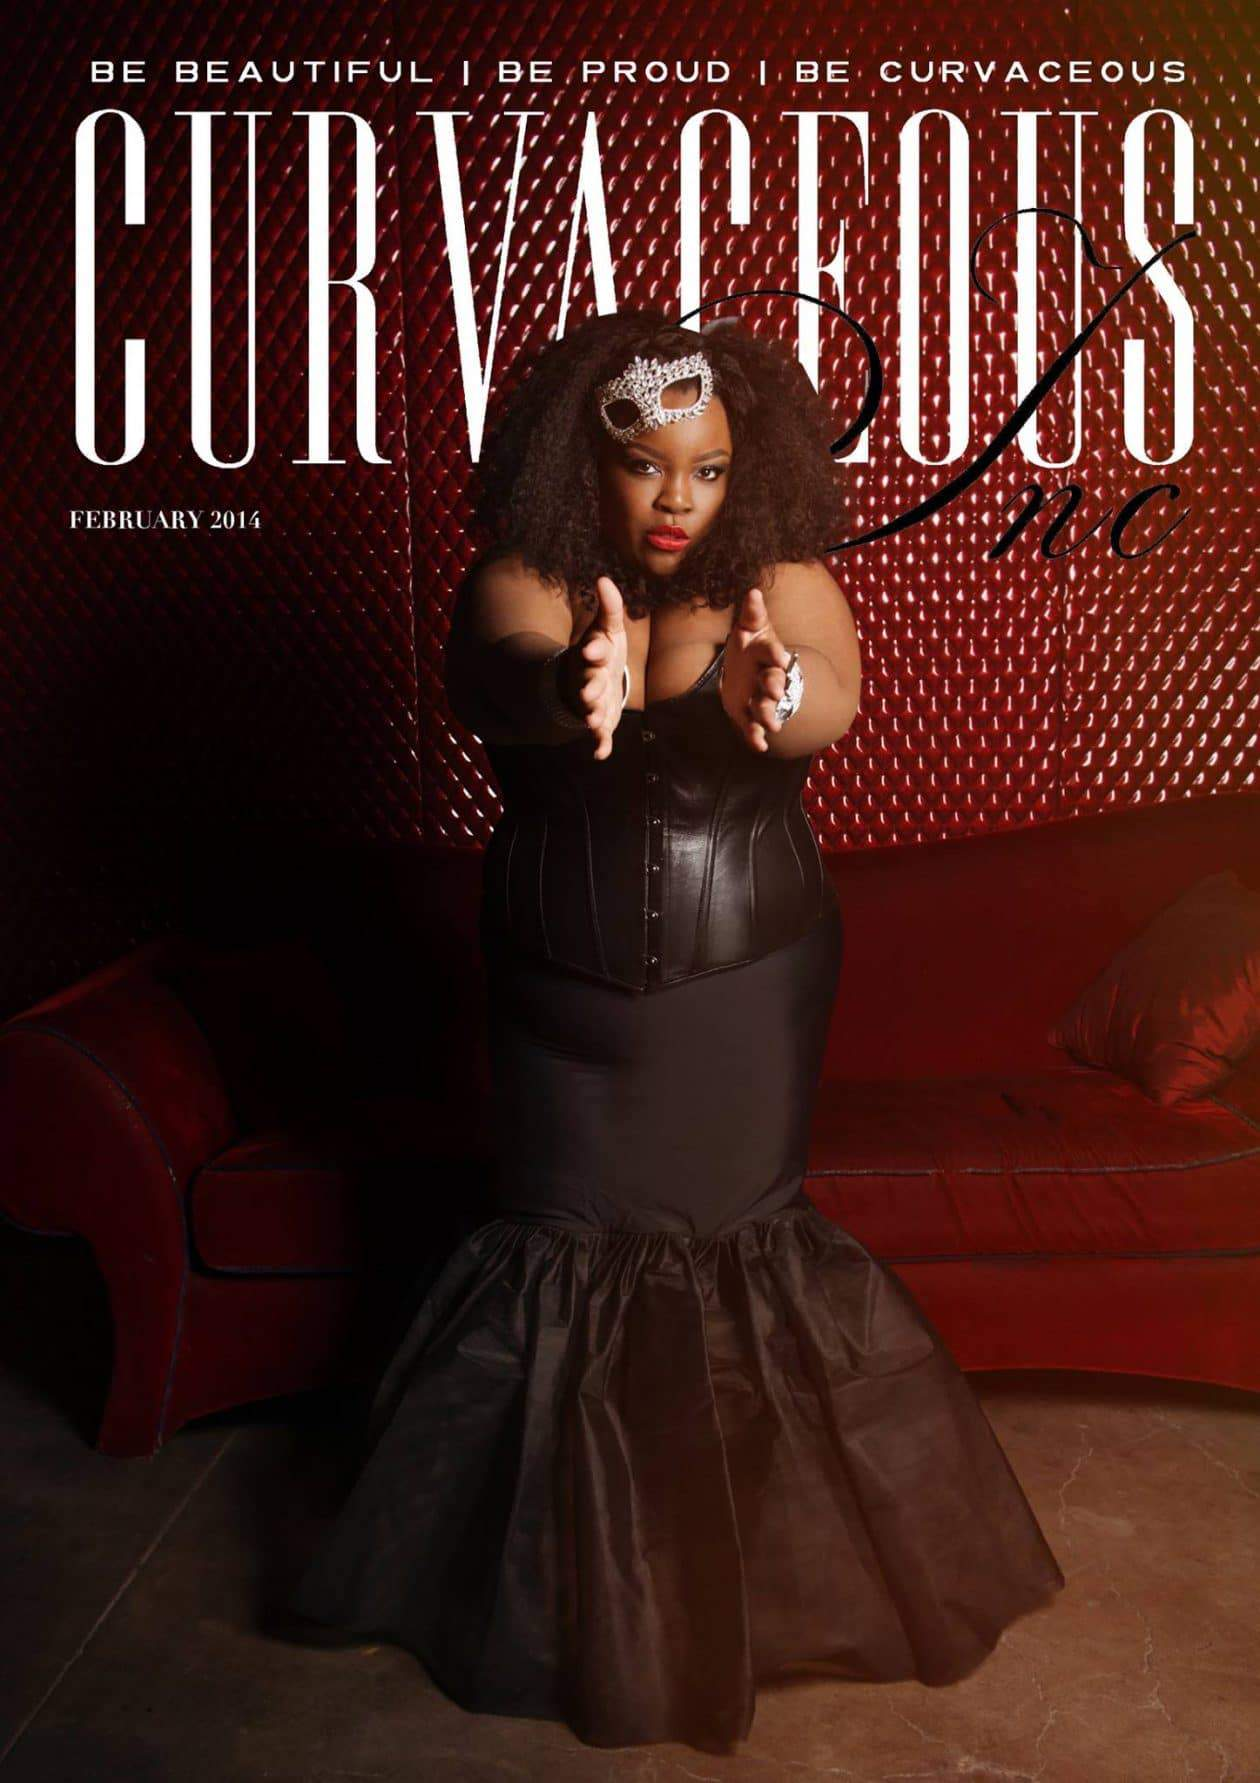 Chenese Lewis for Curvaceous Inc February Cover